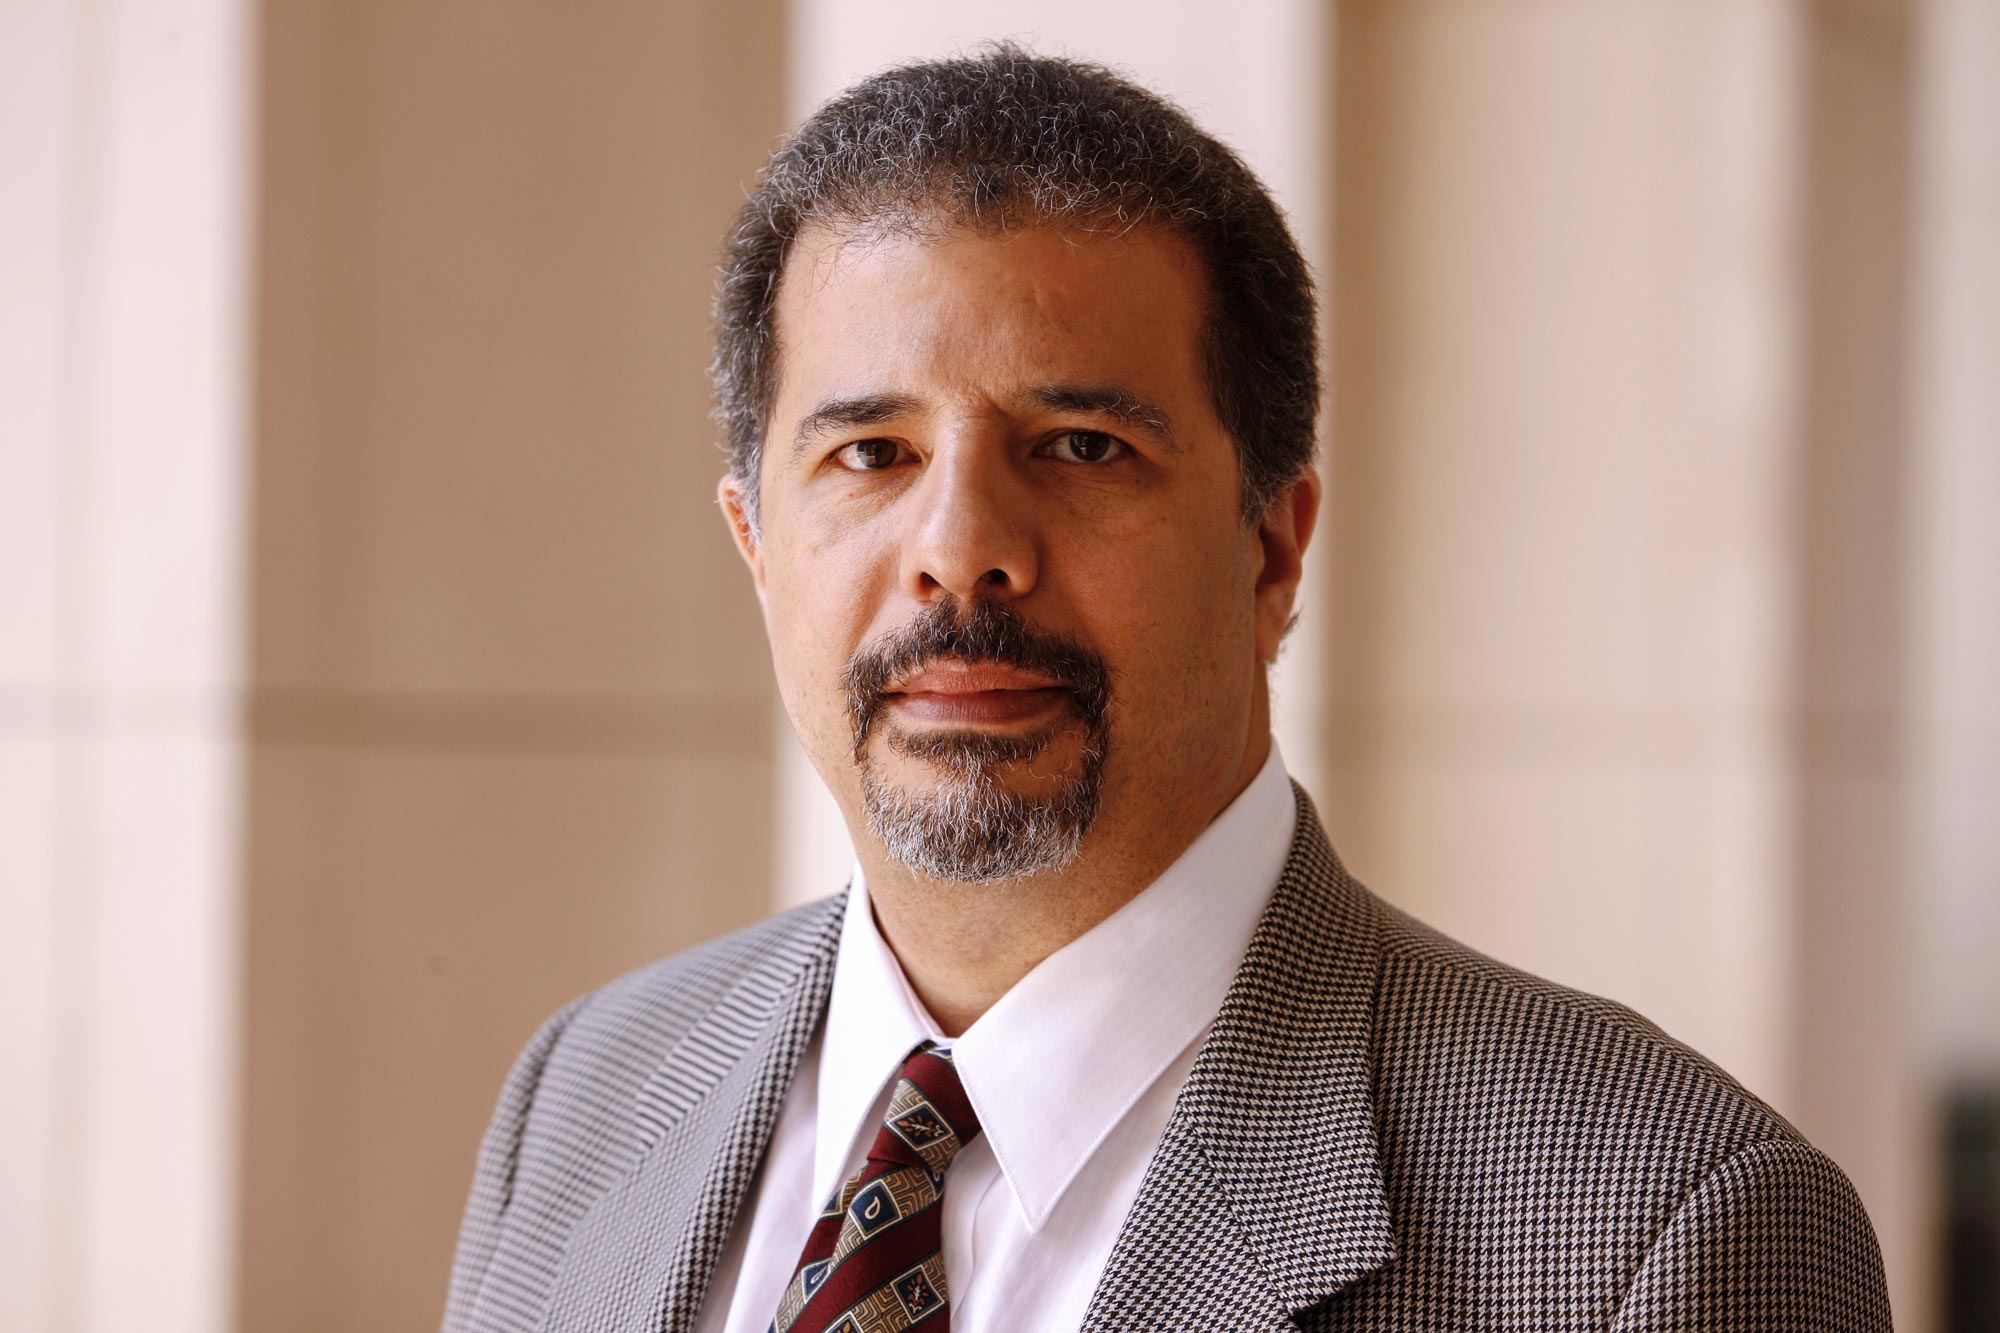 Kim Forde-Mazrui, Mortimer M. Caplin Professor of Law at the University of Virginia and director of UVA's Center for the Study of Race and Law, has focused his scholarship on equal protection involving race, gender and sexual orientation.